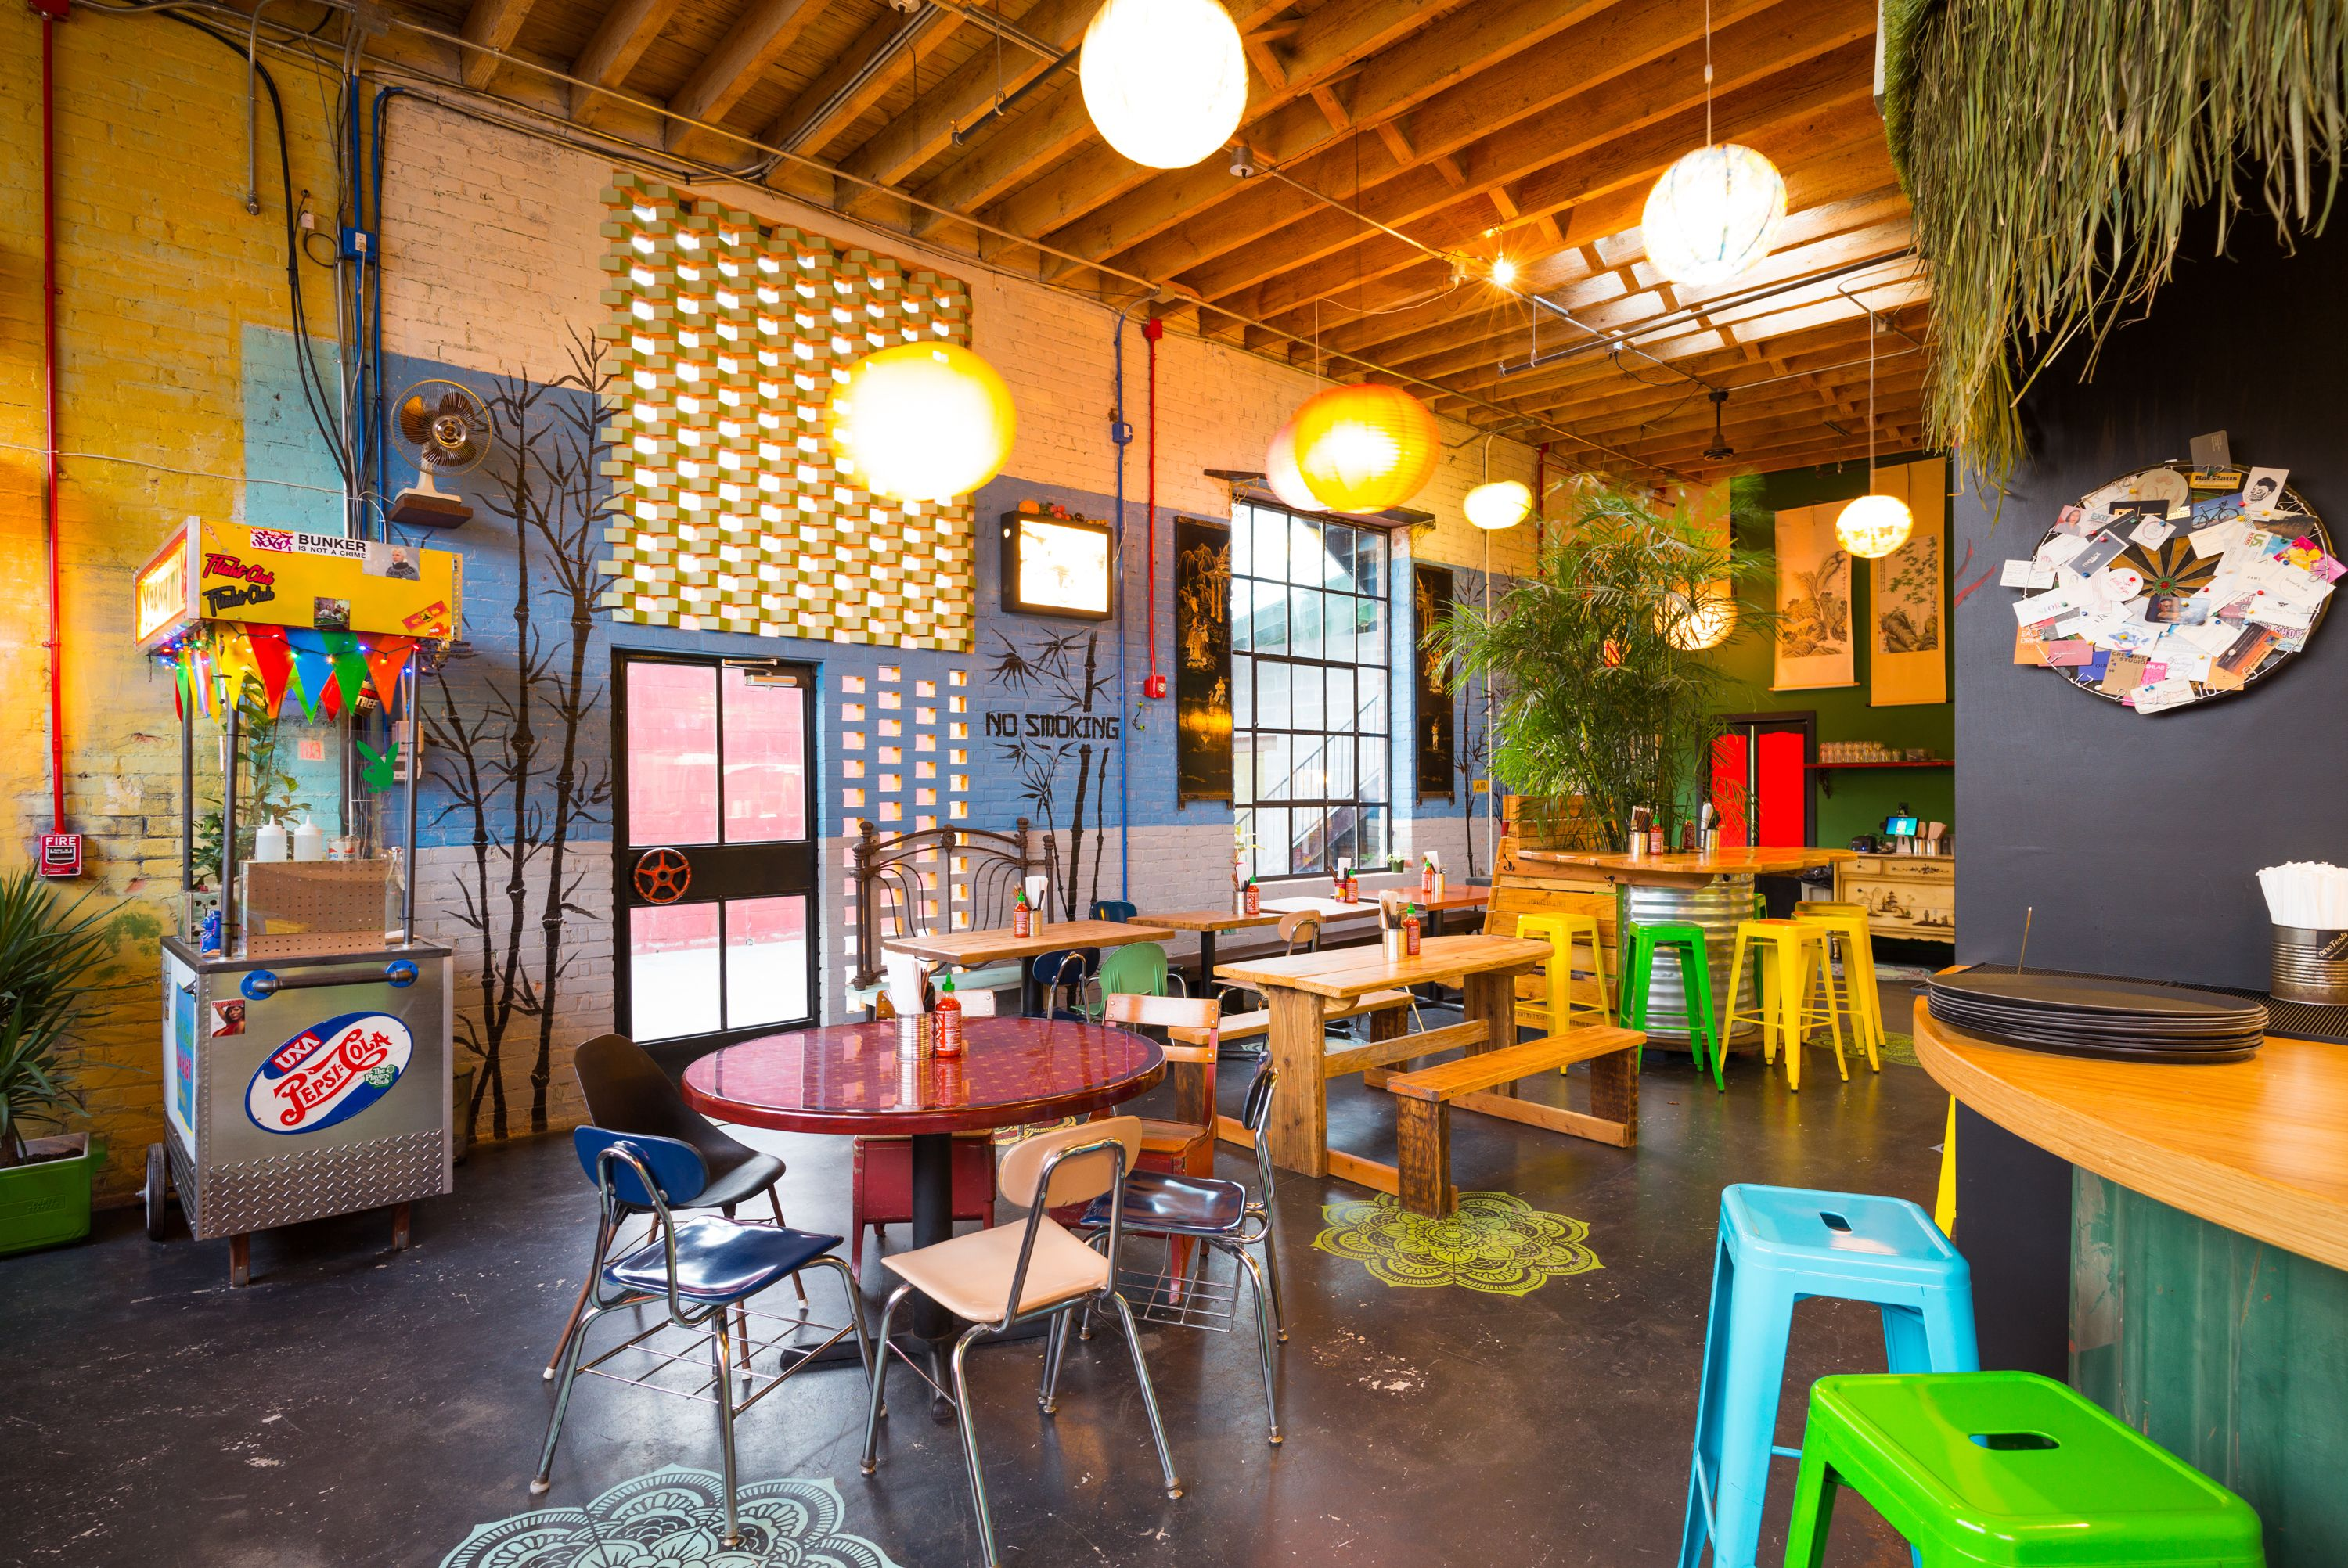 A look at the new bunker jimmy tus ambitious bushwick